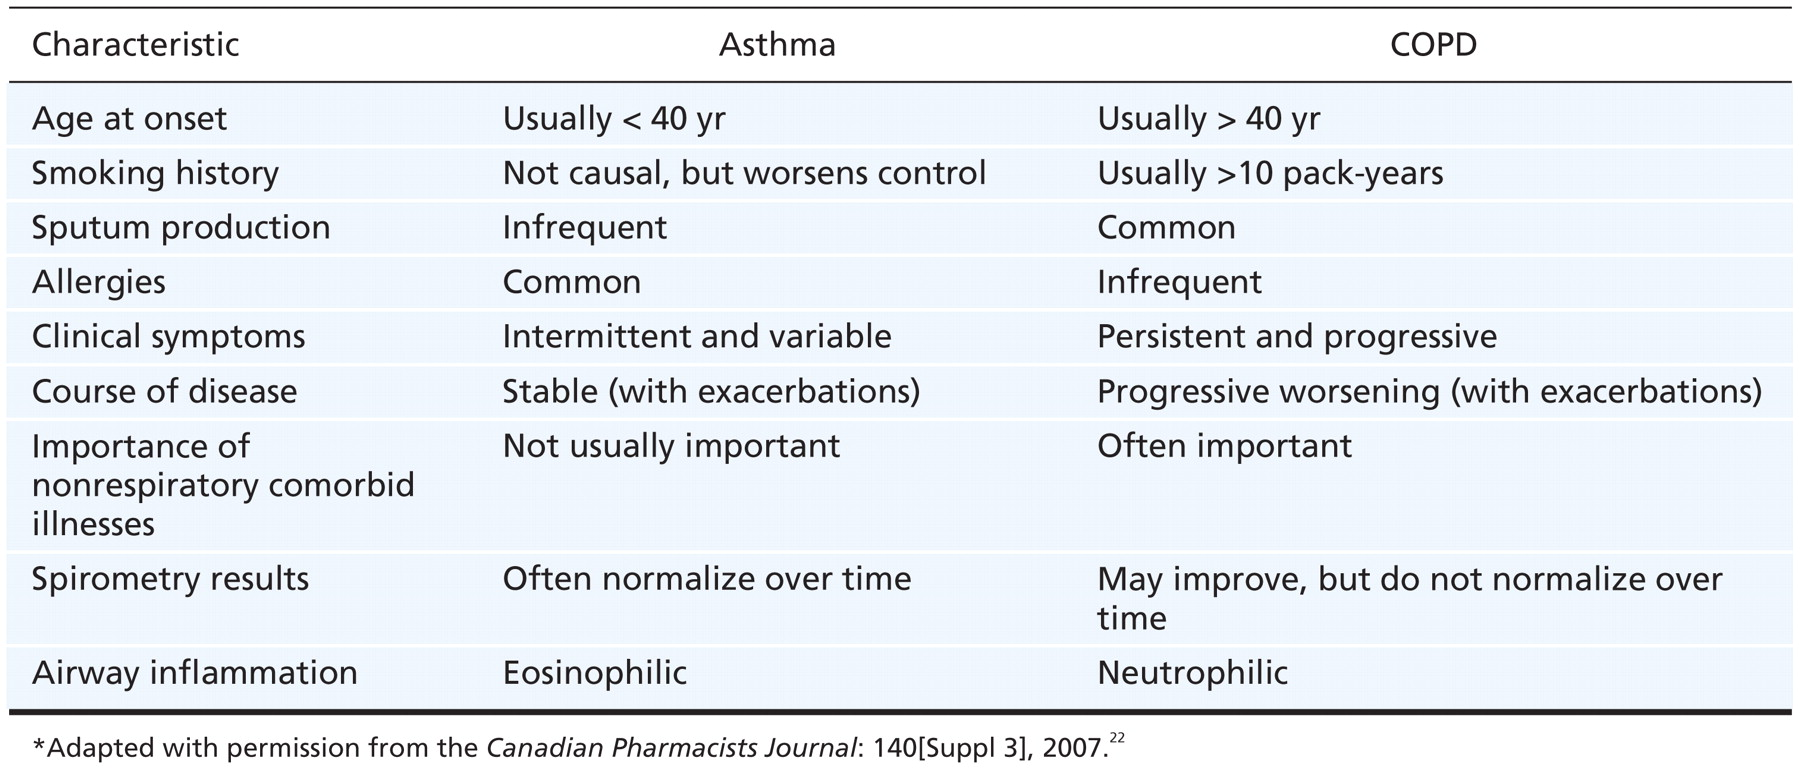 The Differences Between Asthma and COPD forecasting